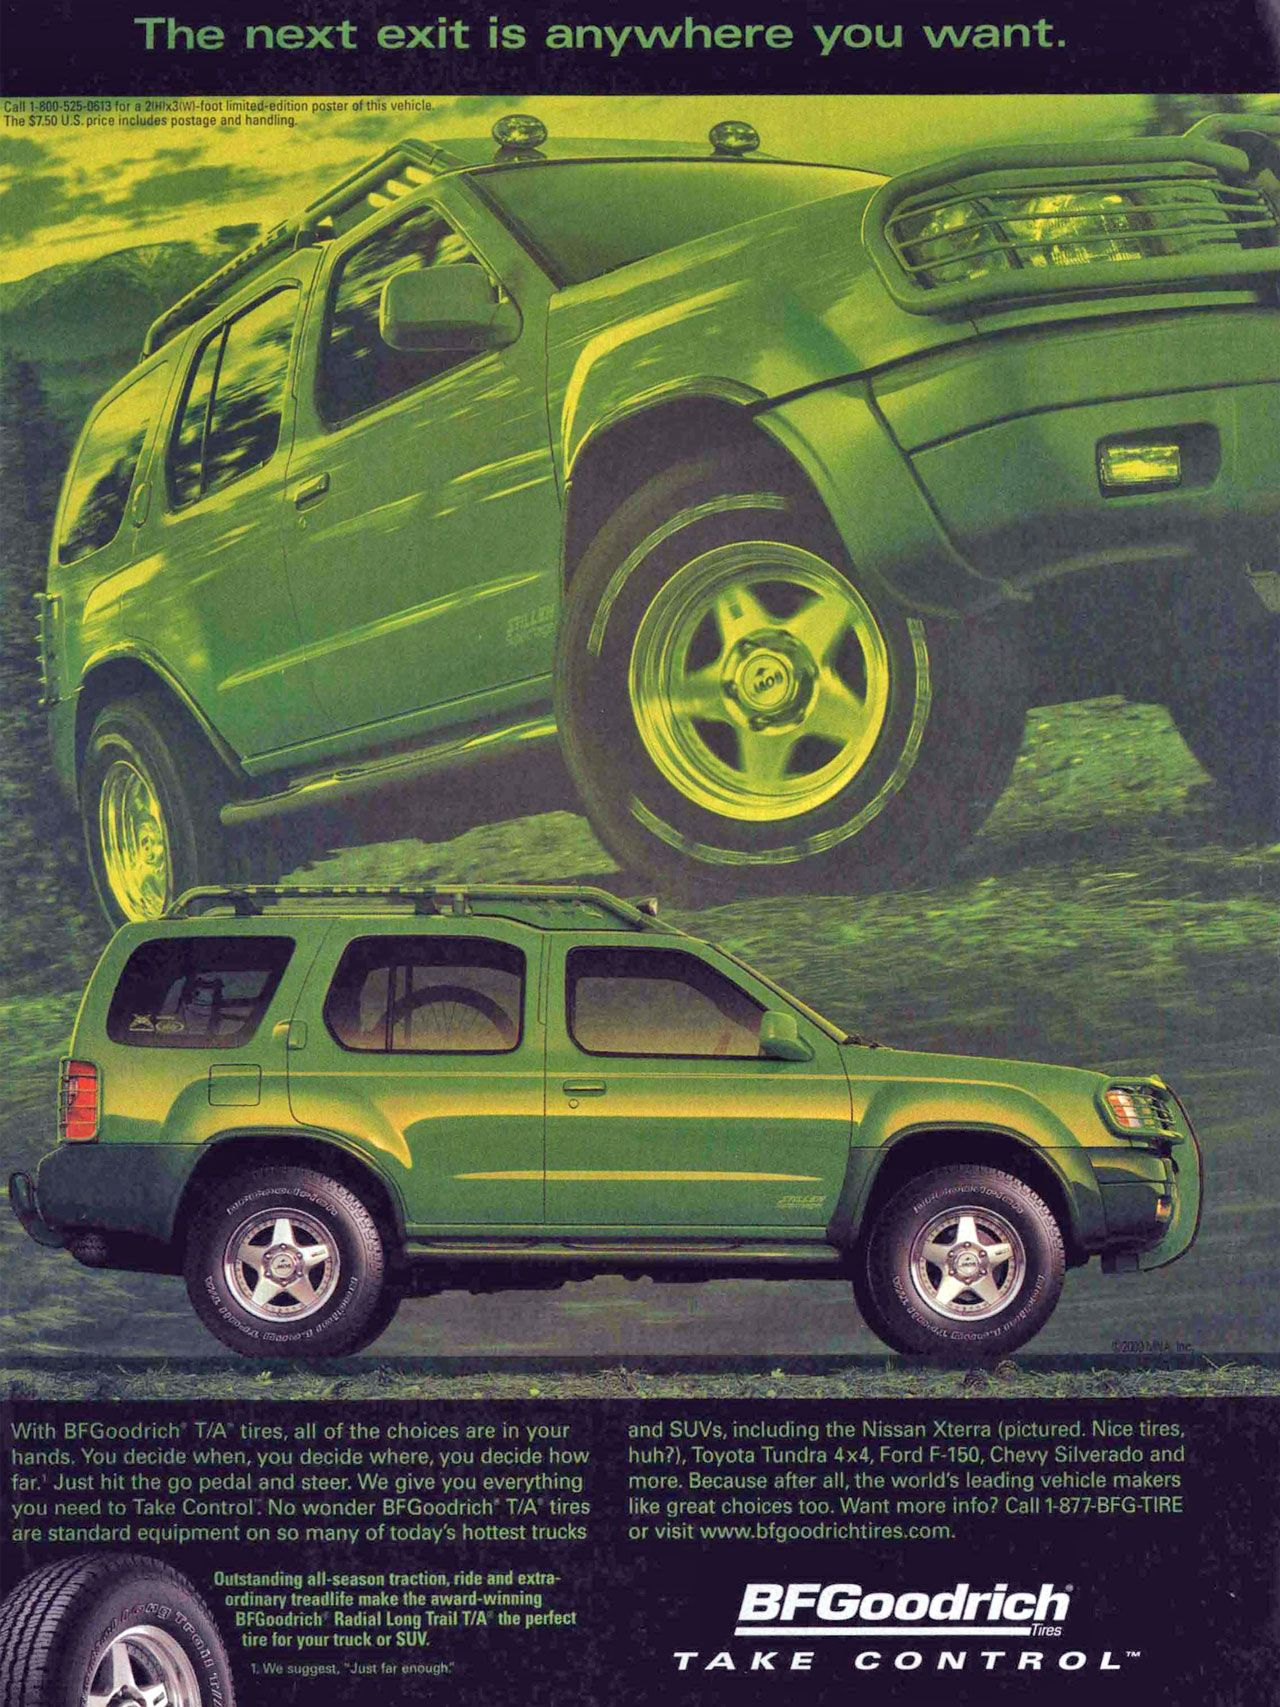 """The next exit is anywhere you want. Carl 1-800.525-0613 for a poster of this vehicle. The S7.50U.S price includes portage and With BFGoodrich T/A tires, all of the choices are in your hands. You decide when, you decide where, you decide how far.' Just hit the go pedal and steer. We give you everything you need to Take Control. No wonder BFGoodrich T/A tires are standard equipment on so many of today's hottest trucks Outstanding all-season traction, ride and extra-"""" ordinary treadlife make the award-winning BFGoodrich Radial Long Trail T/A the perfect tire for your truck or SUV. 1 We suggest. 'Just far enough'. and SUVs, including the Nissan Xterra (pictured. Nice tires, huh?), Toyota Tundra 4x4, Ford F-150, Chevy Silverado and more. Because after all, the world's leading vehicle makers like great choices too. Want more info? Call 1-877-BFG-TIRE or visit www.bfgoodrichtires.com. BFGoodrich Tires TAKE CONTROL"""